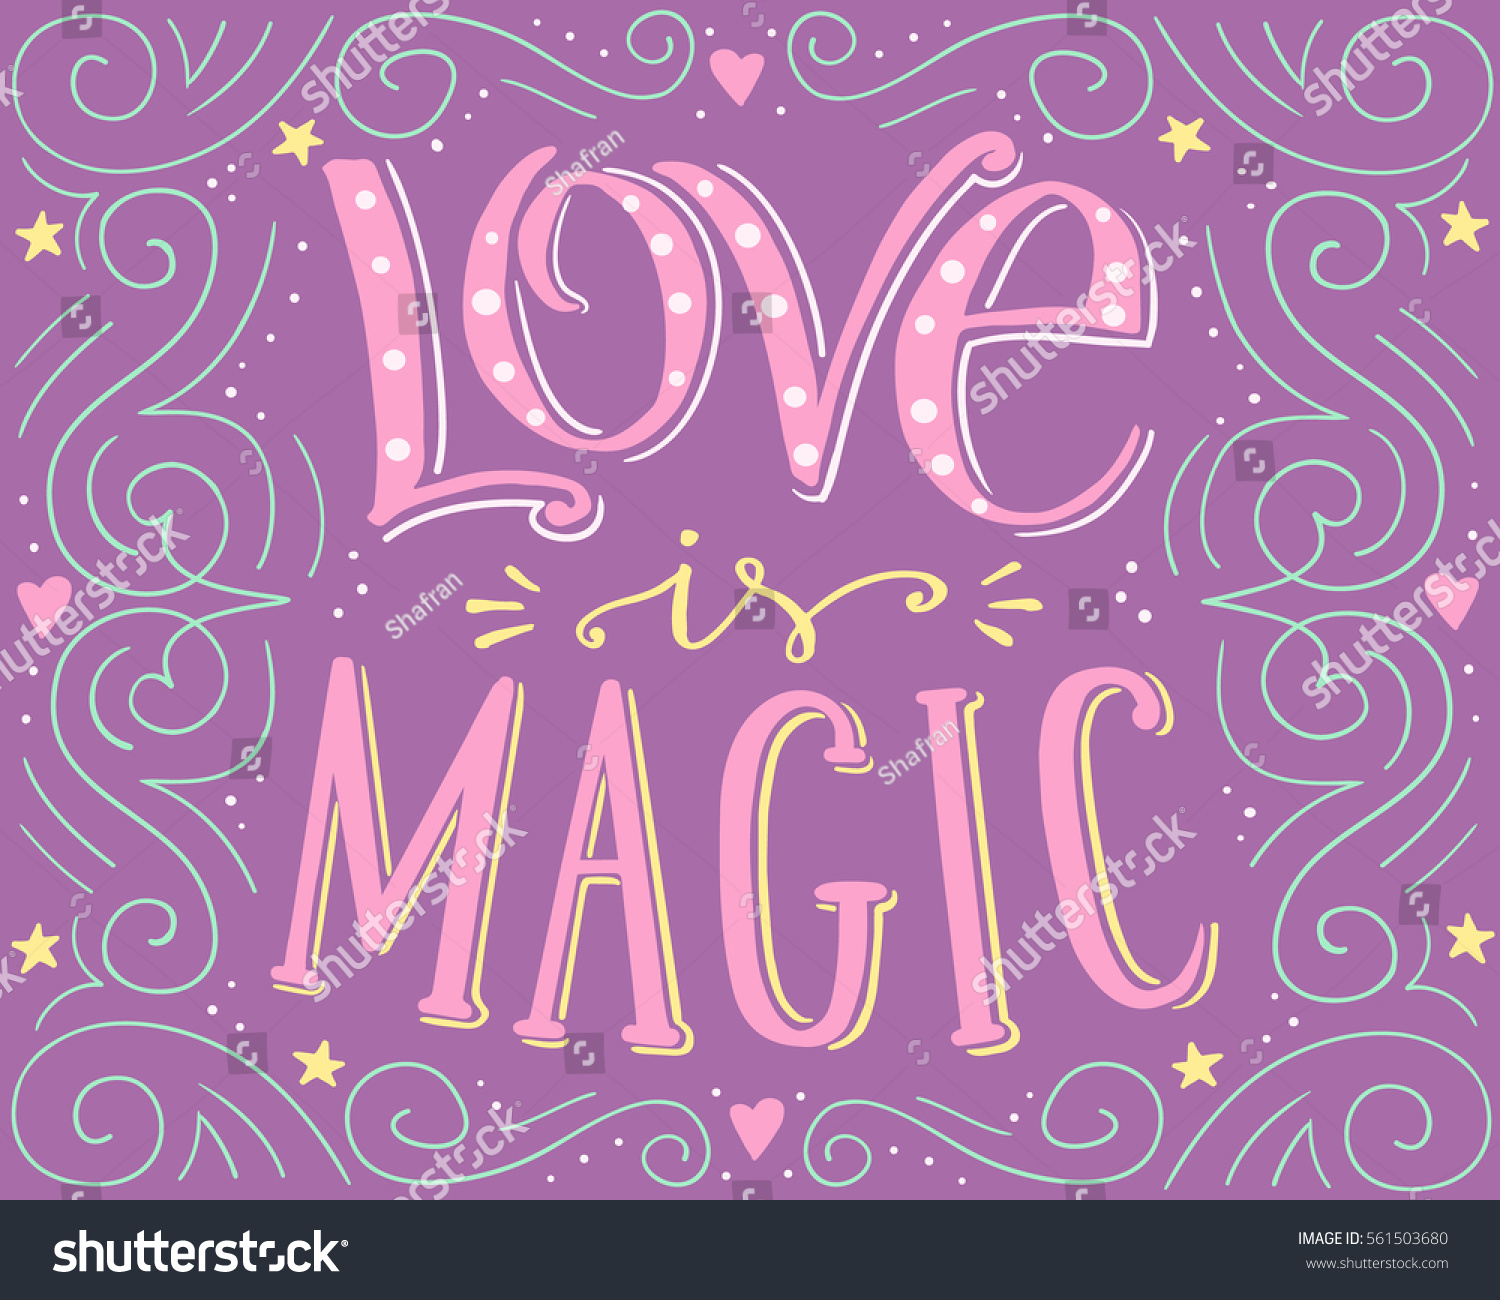 Shirt design card - Love Is Magic Hand Drawn Vector Typographic Poster Hand Written Lettering Romantic Background